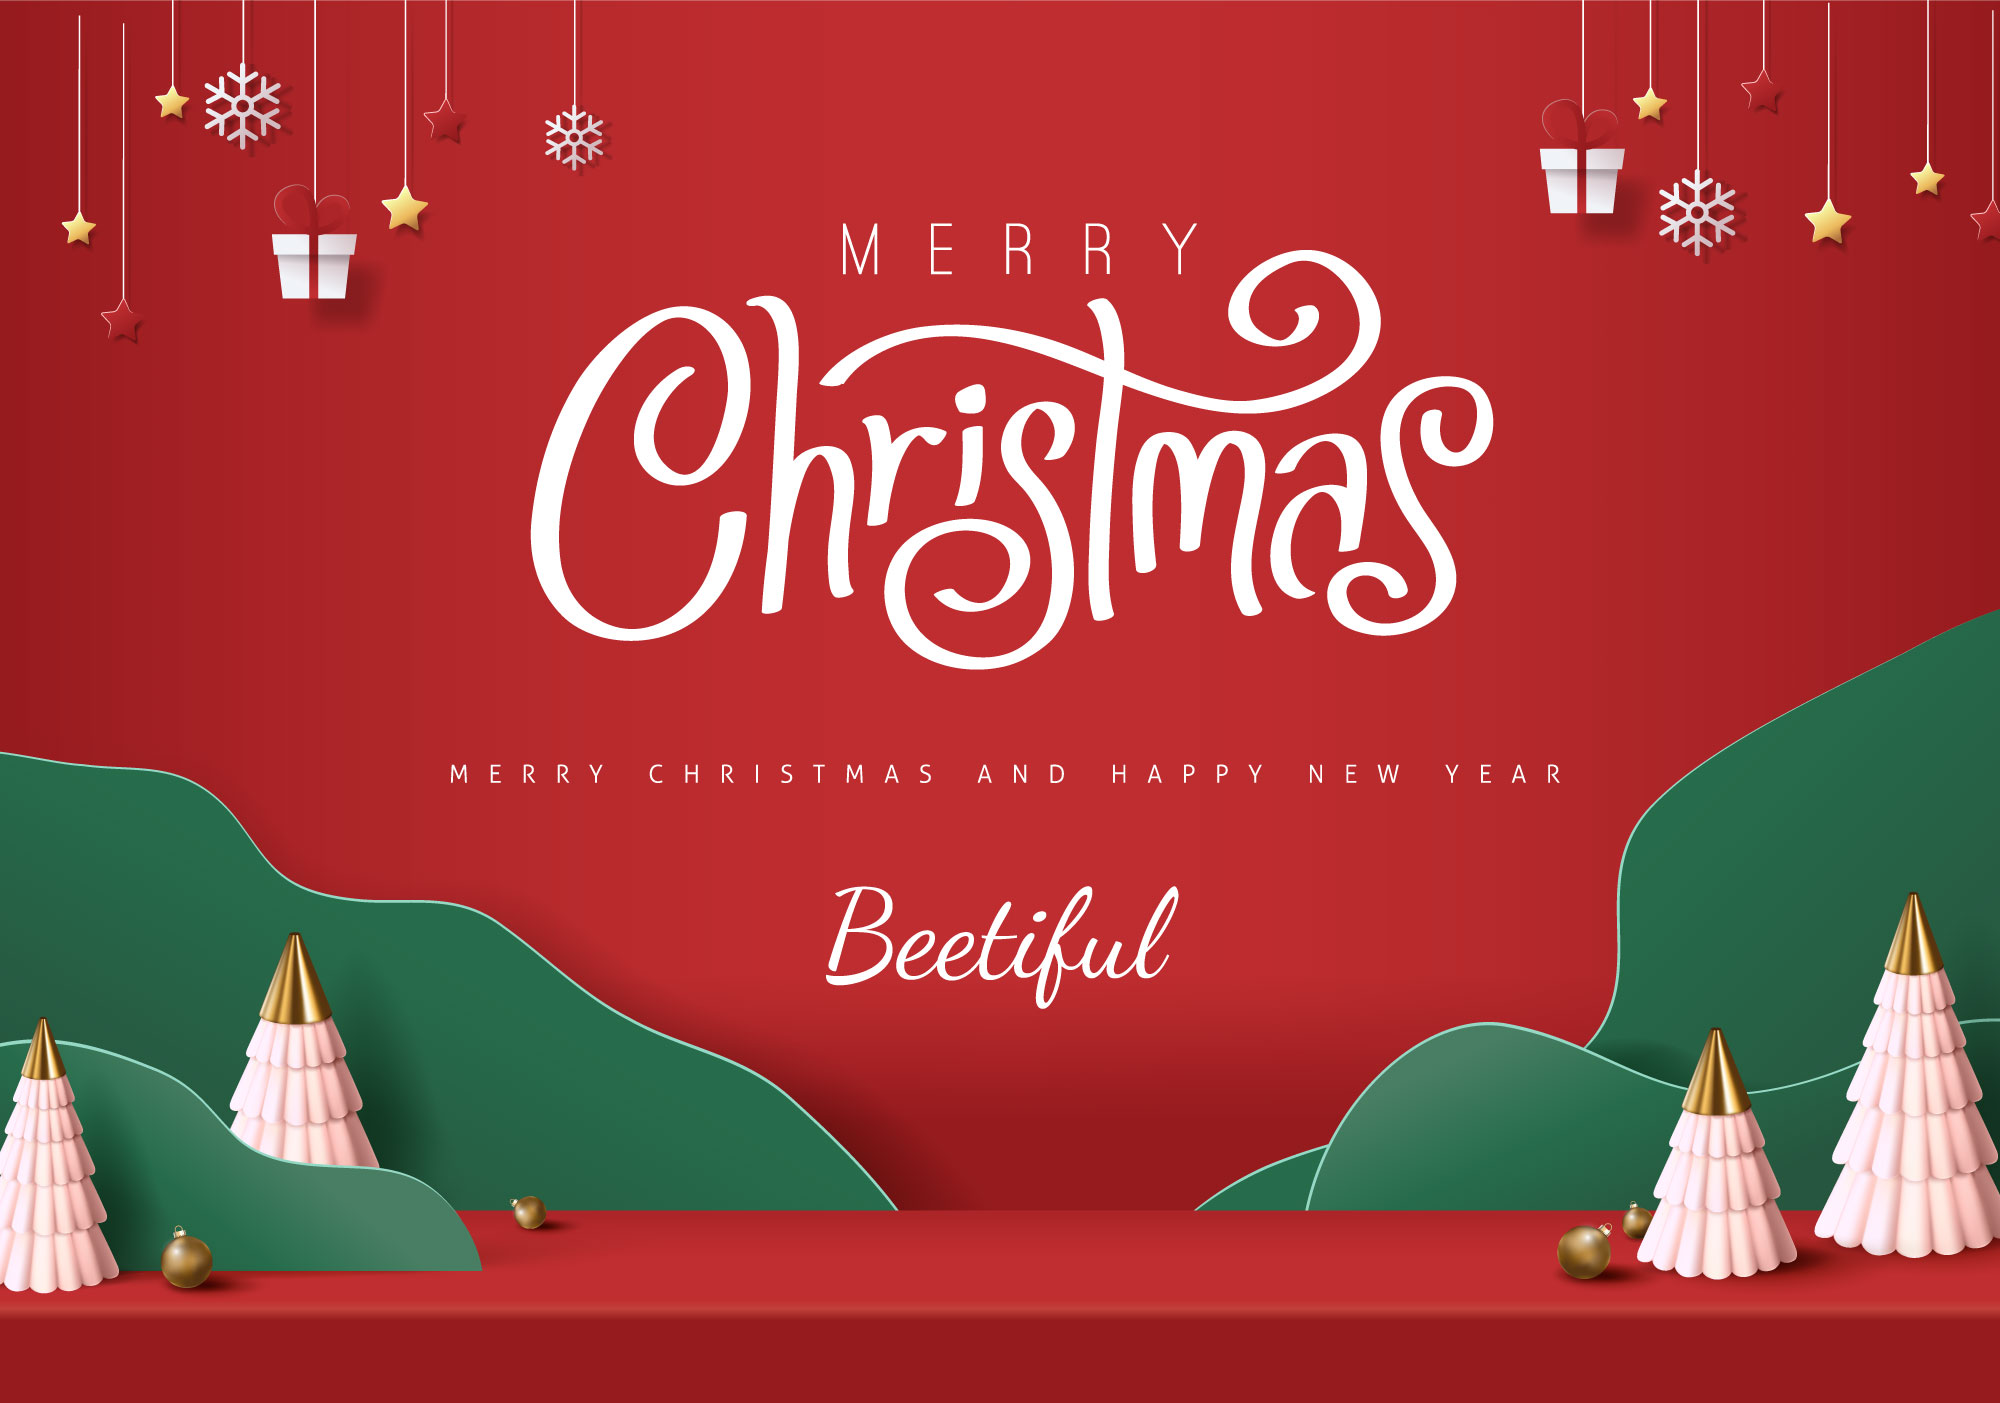 Merry Christmas and Happy New Year - From Beetiful